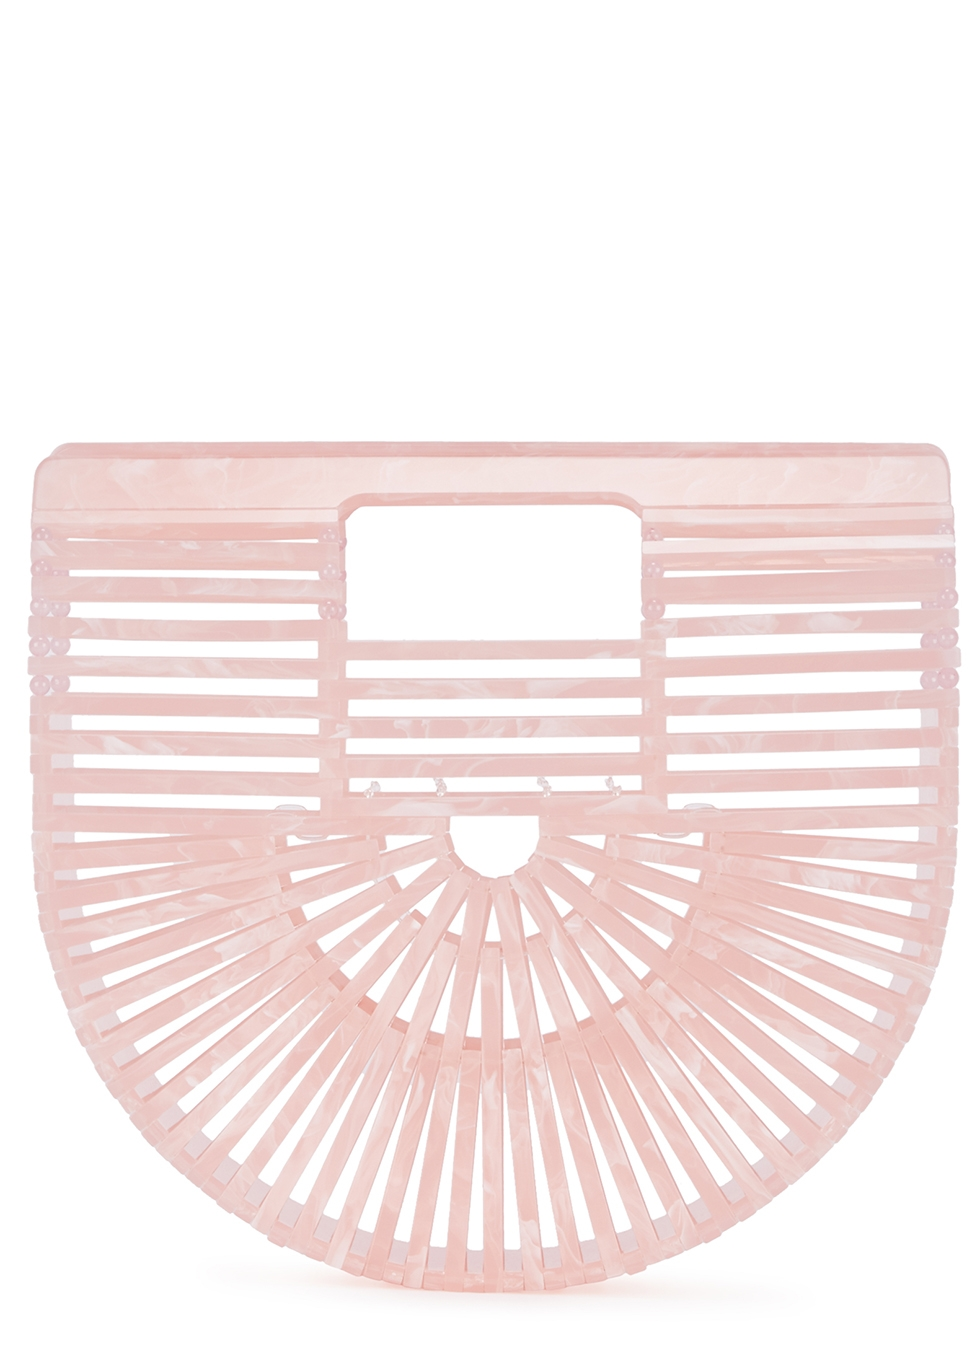 Ark mini powder-pink marbled clutch - Cult Gaia